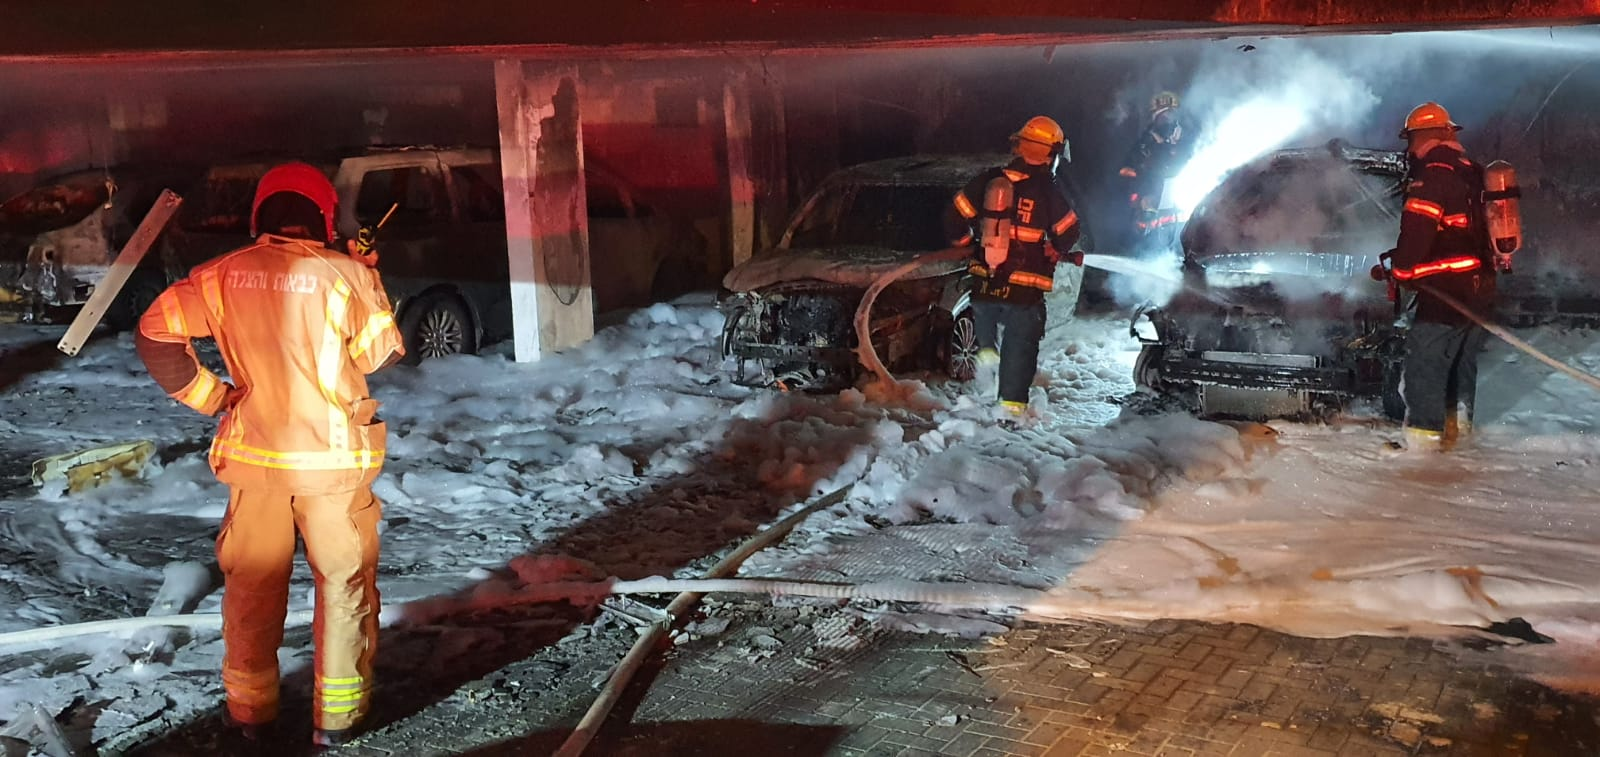 BREAKING IN HAIFA, ISRAEL: At least 59 people injured in suspected arson attack by local Arabs.